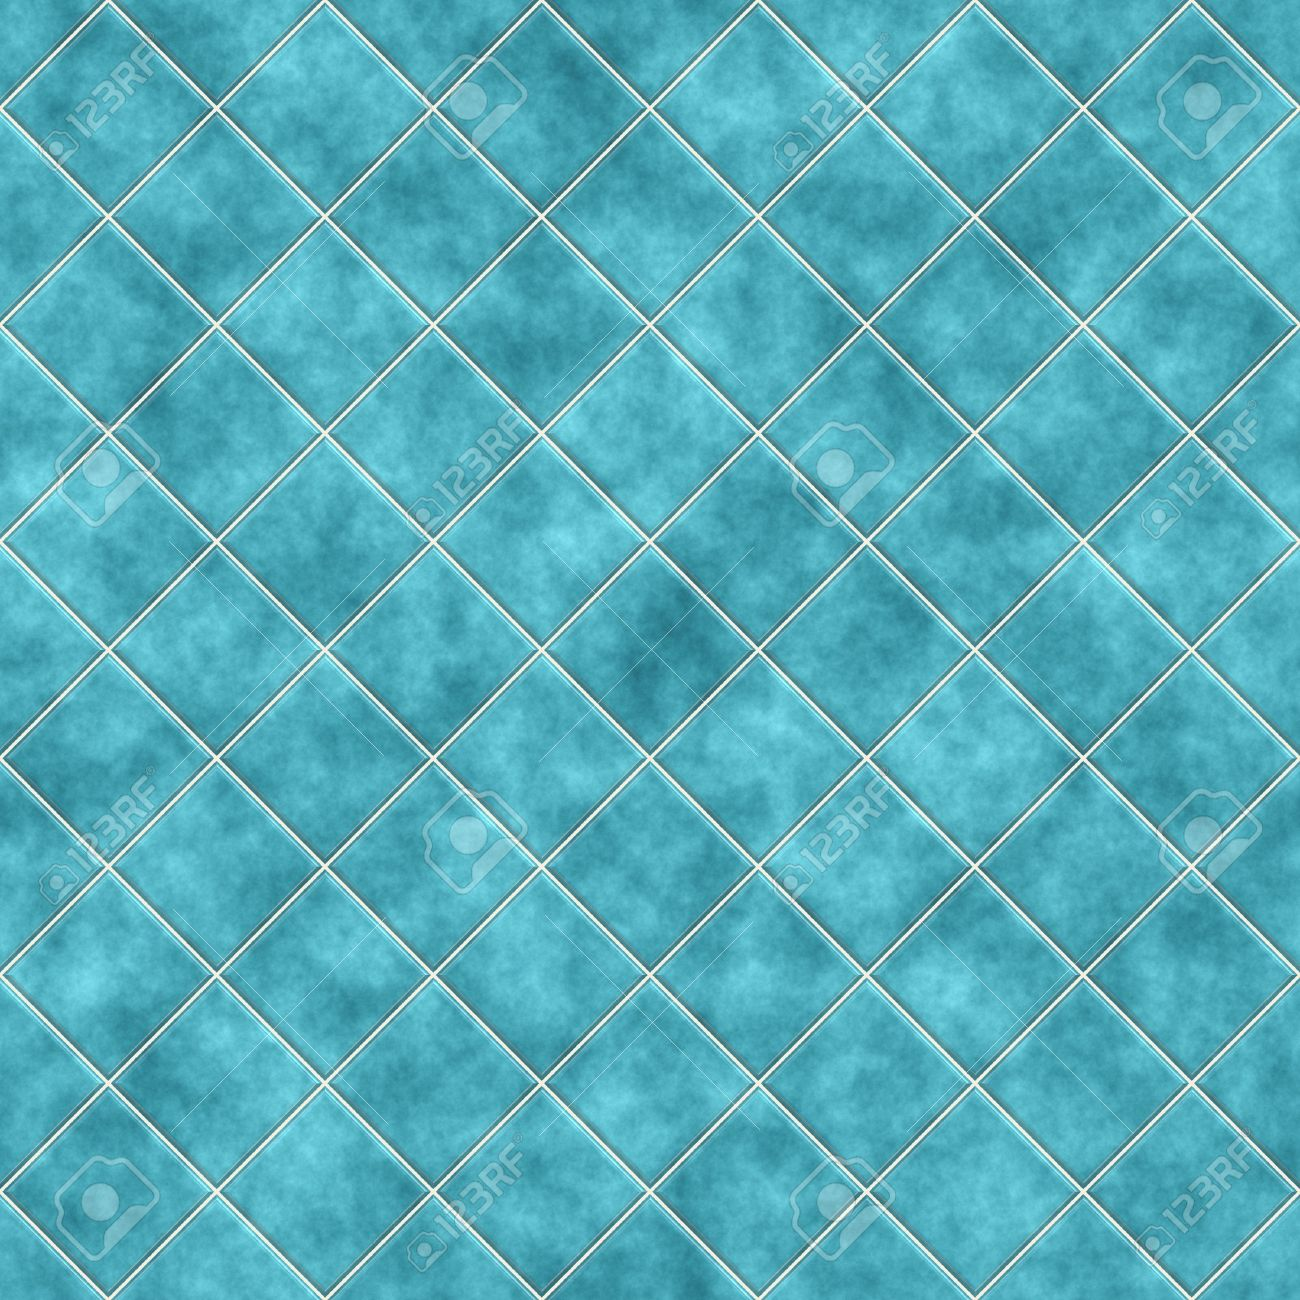 kitchen blue tiles texture. Seamless Blue Tiles Texture Background, Kitchen Or Bathroom Concept Stock Photo - 7306533 U